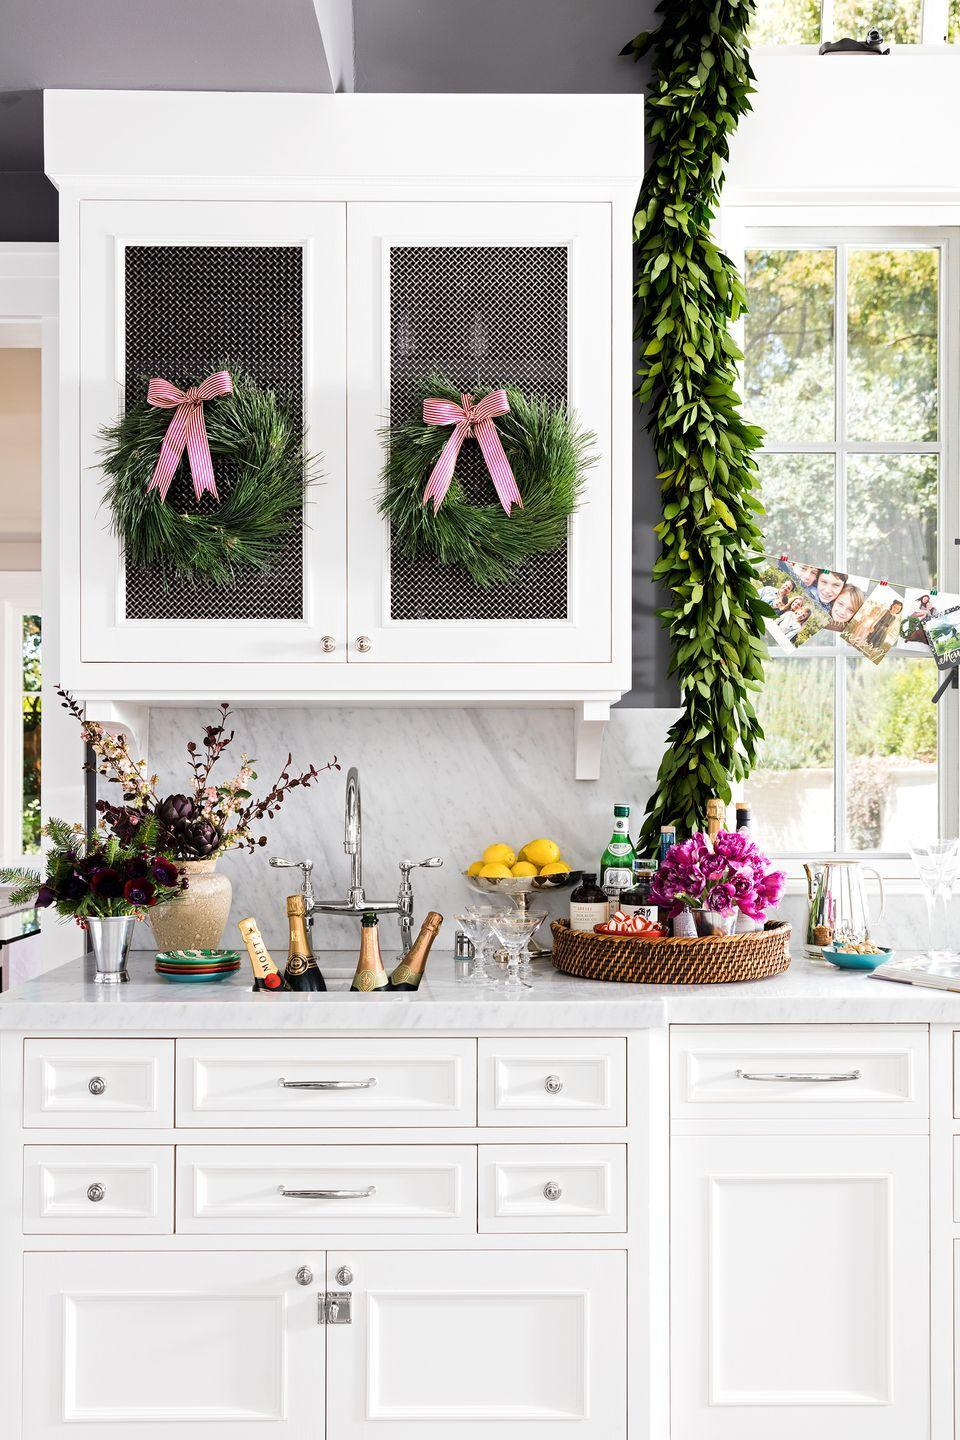 <p>Though the lush garland framing the window adds so much vibrancy to this kitchen, it's the collection of family Christmas cards hanging across the window that brings personal character to the space and also shares the joy with neighbors. Hang some string across the window and add the cards as they come.</p>